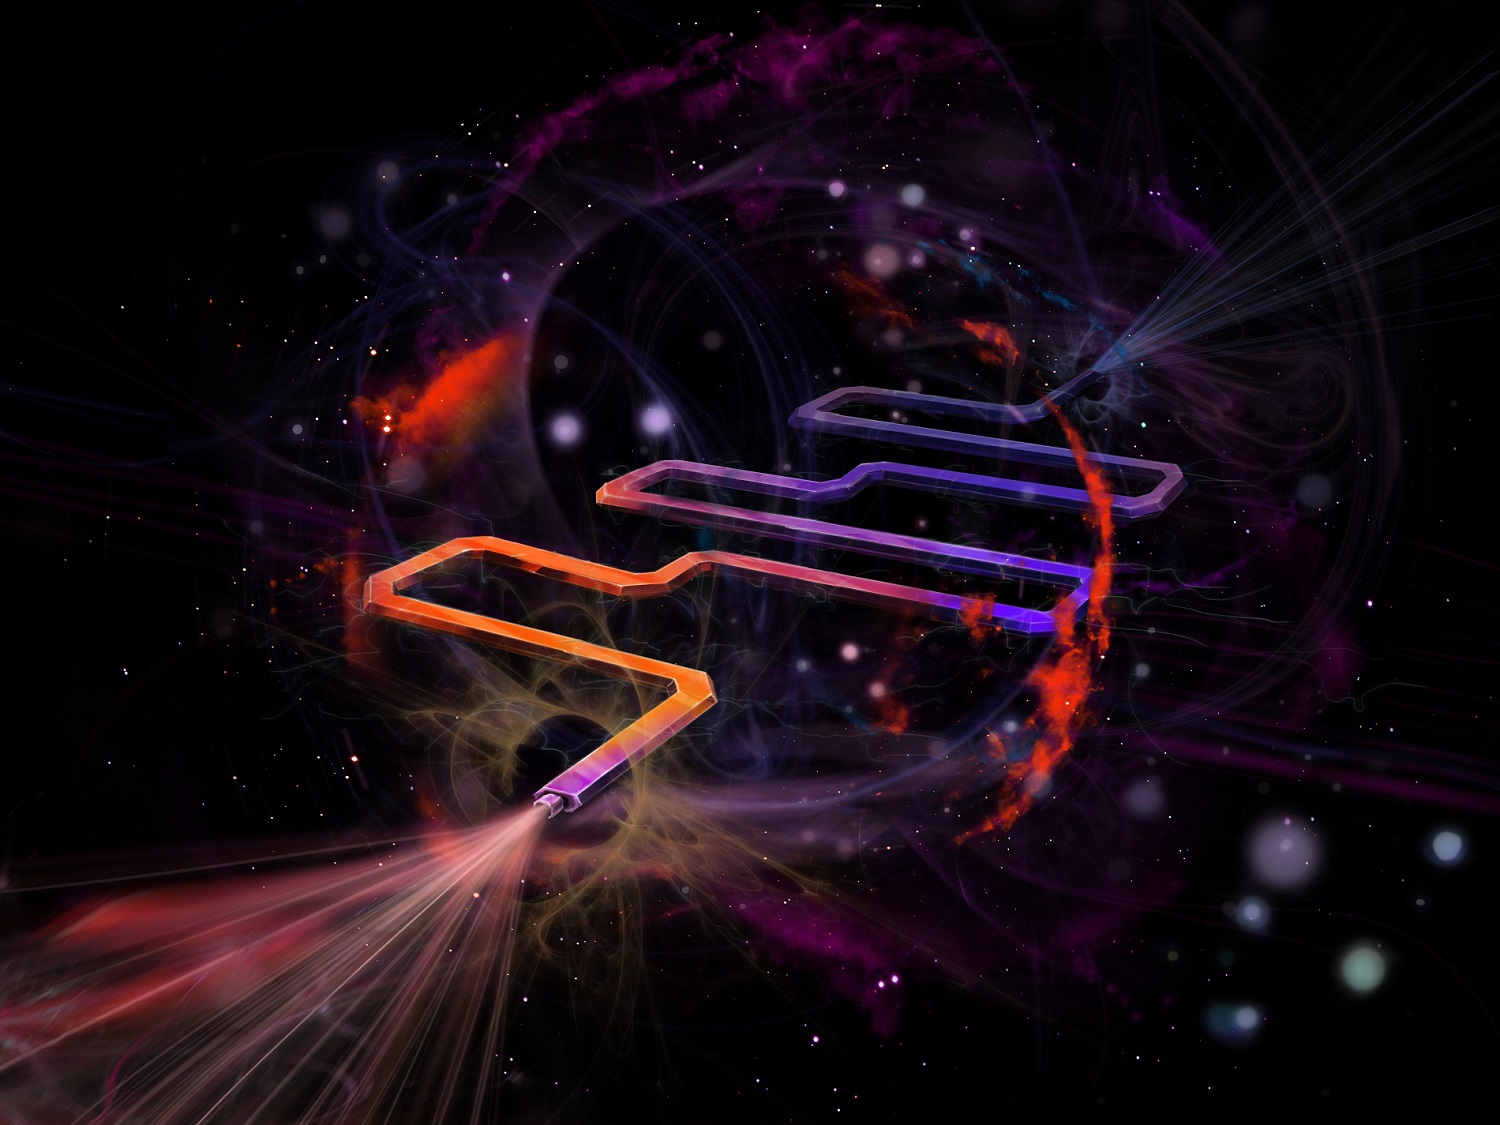 Artistic impression of a superconducting resonator coupled it its quantum-mechanical environment